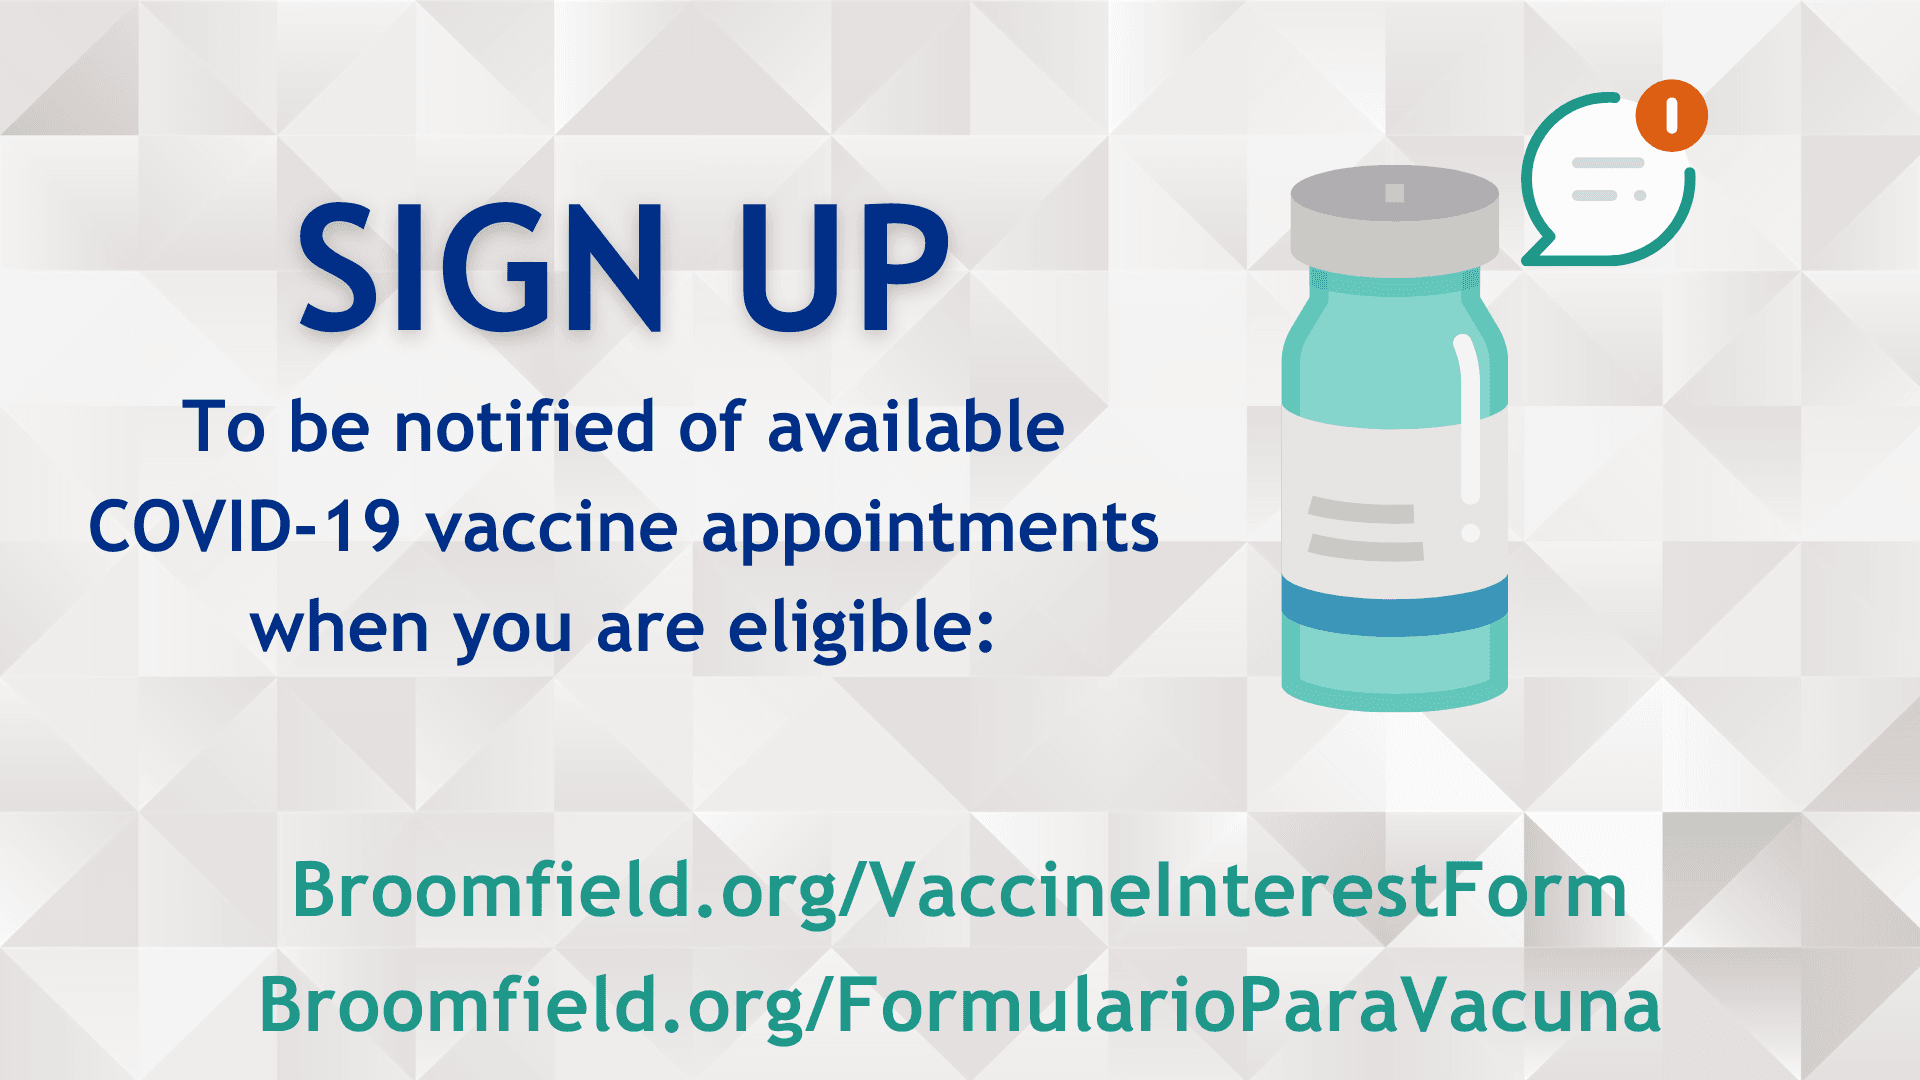 Sign up to be notified of COVID-19 vaccine appointments when you are eligible. Click for info.